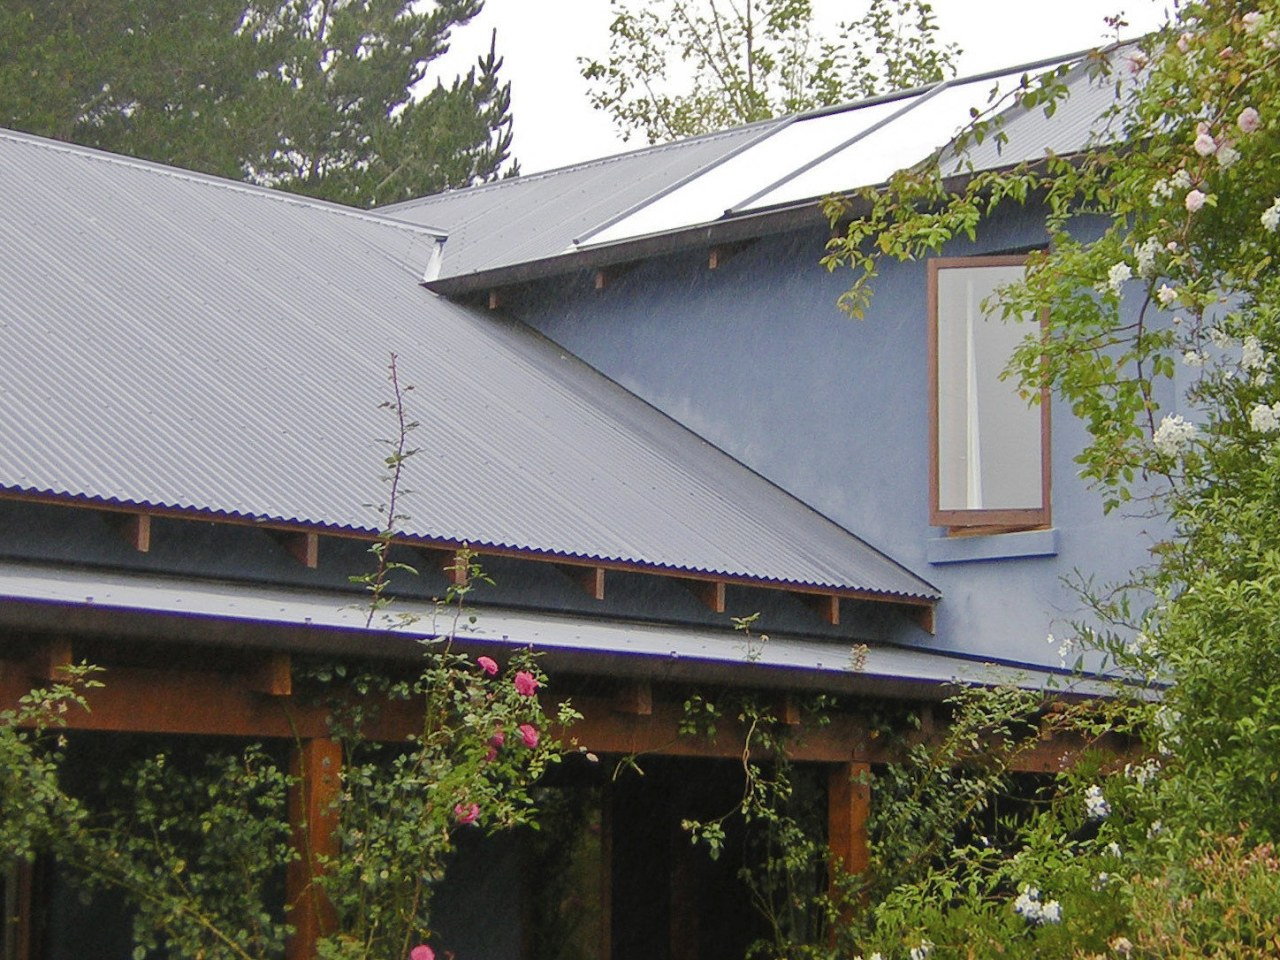 This large home efficiently uses solar energy thanks facade, home, house, outdoor structure, real estate, roof, tree, wood, gray, brown